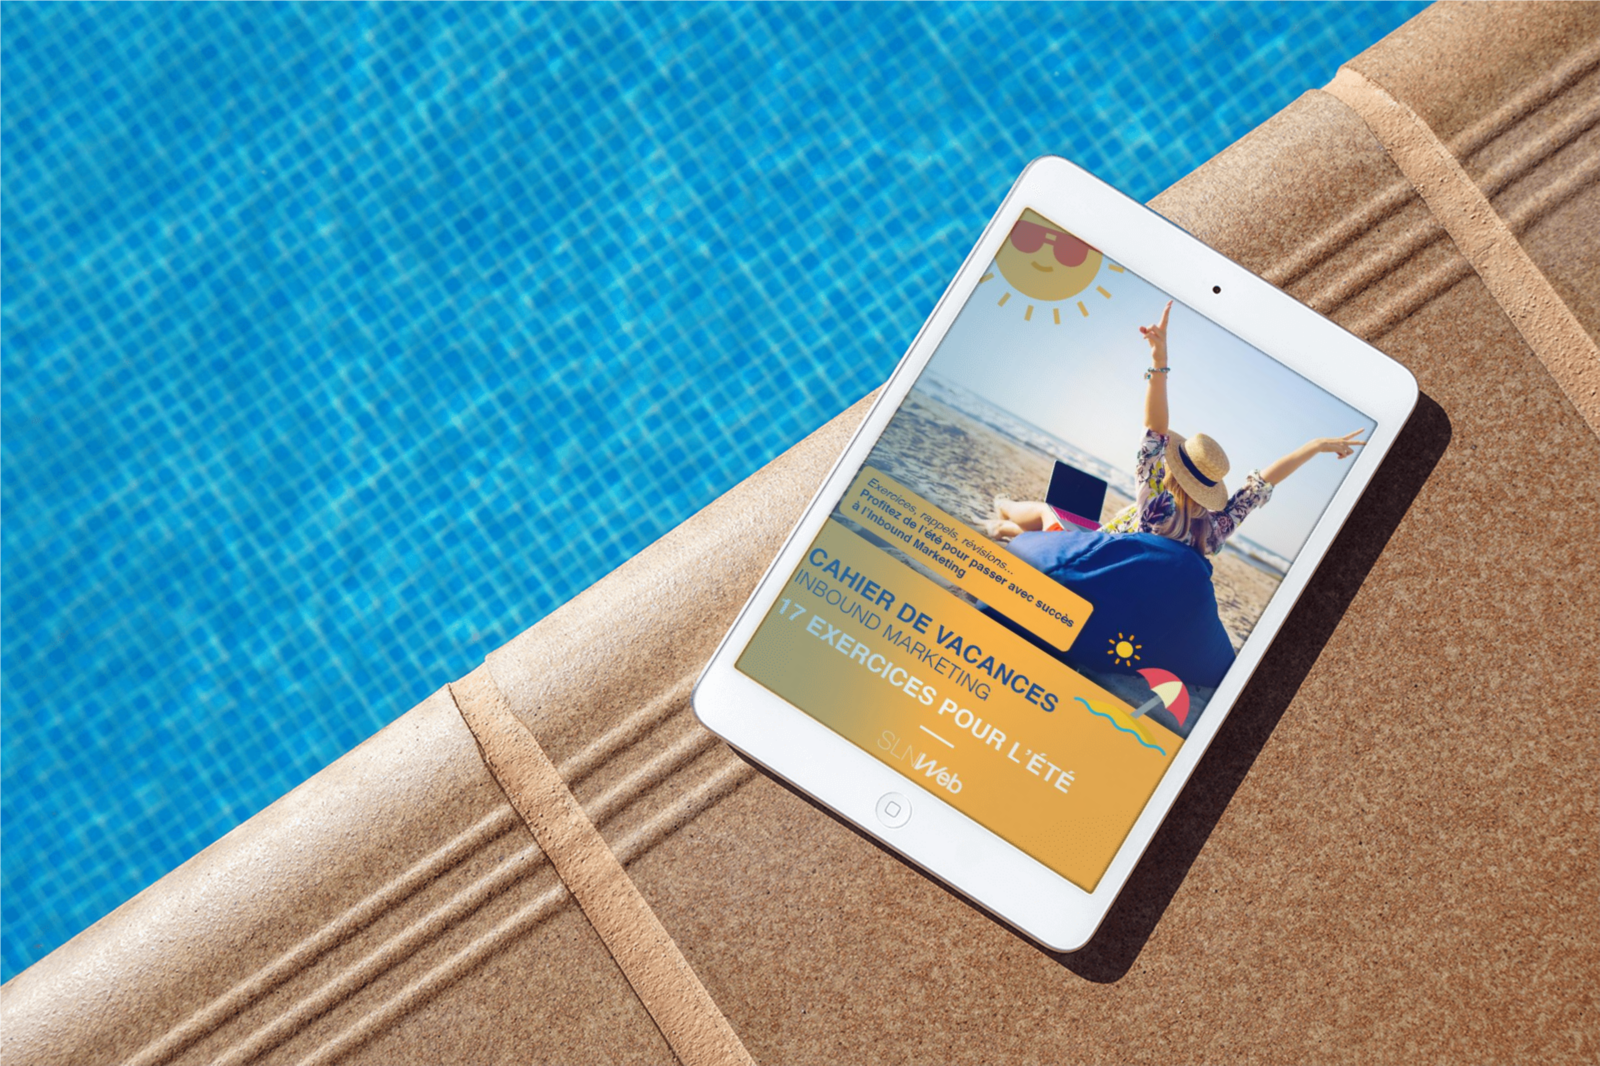 le cahier de vacances Inbound Marketing - a la piscine